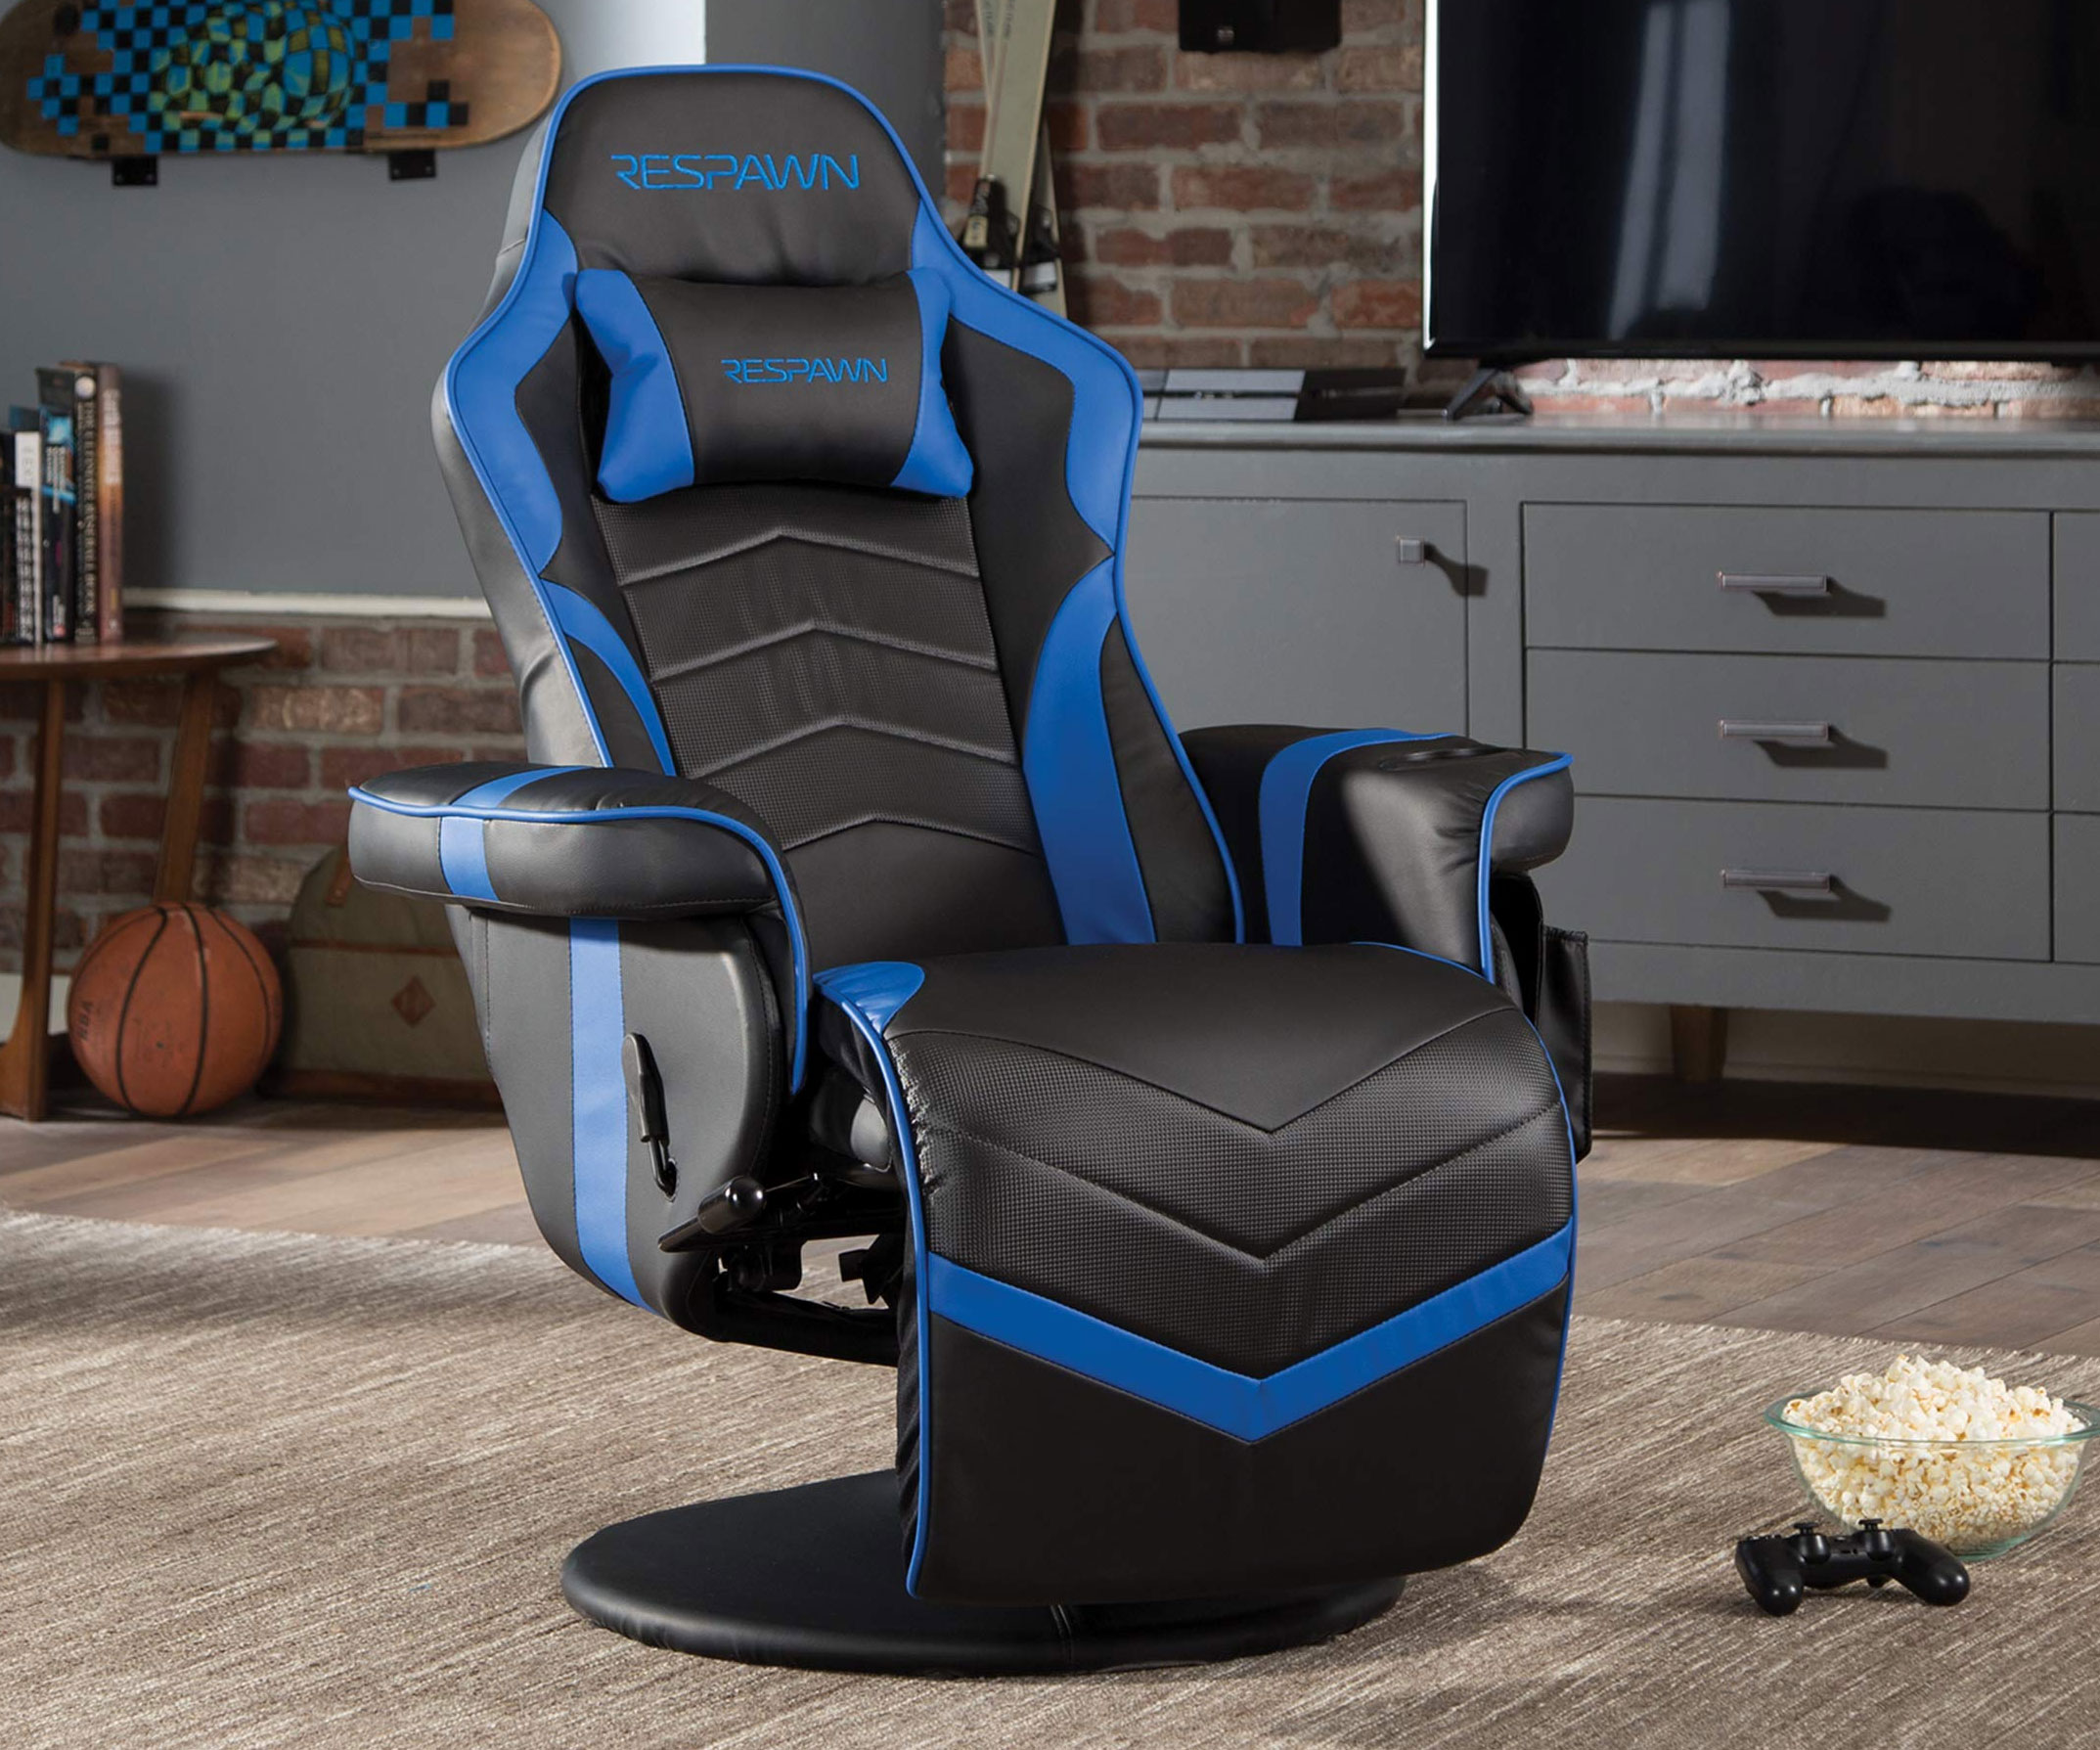 Respawn-900 Gaming Recliner